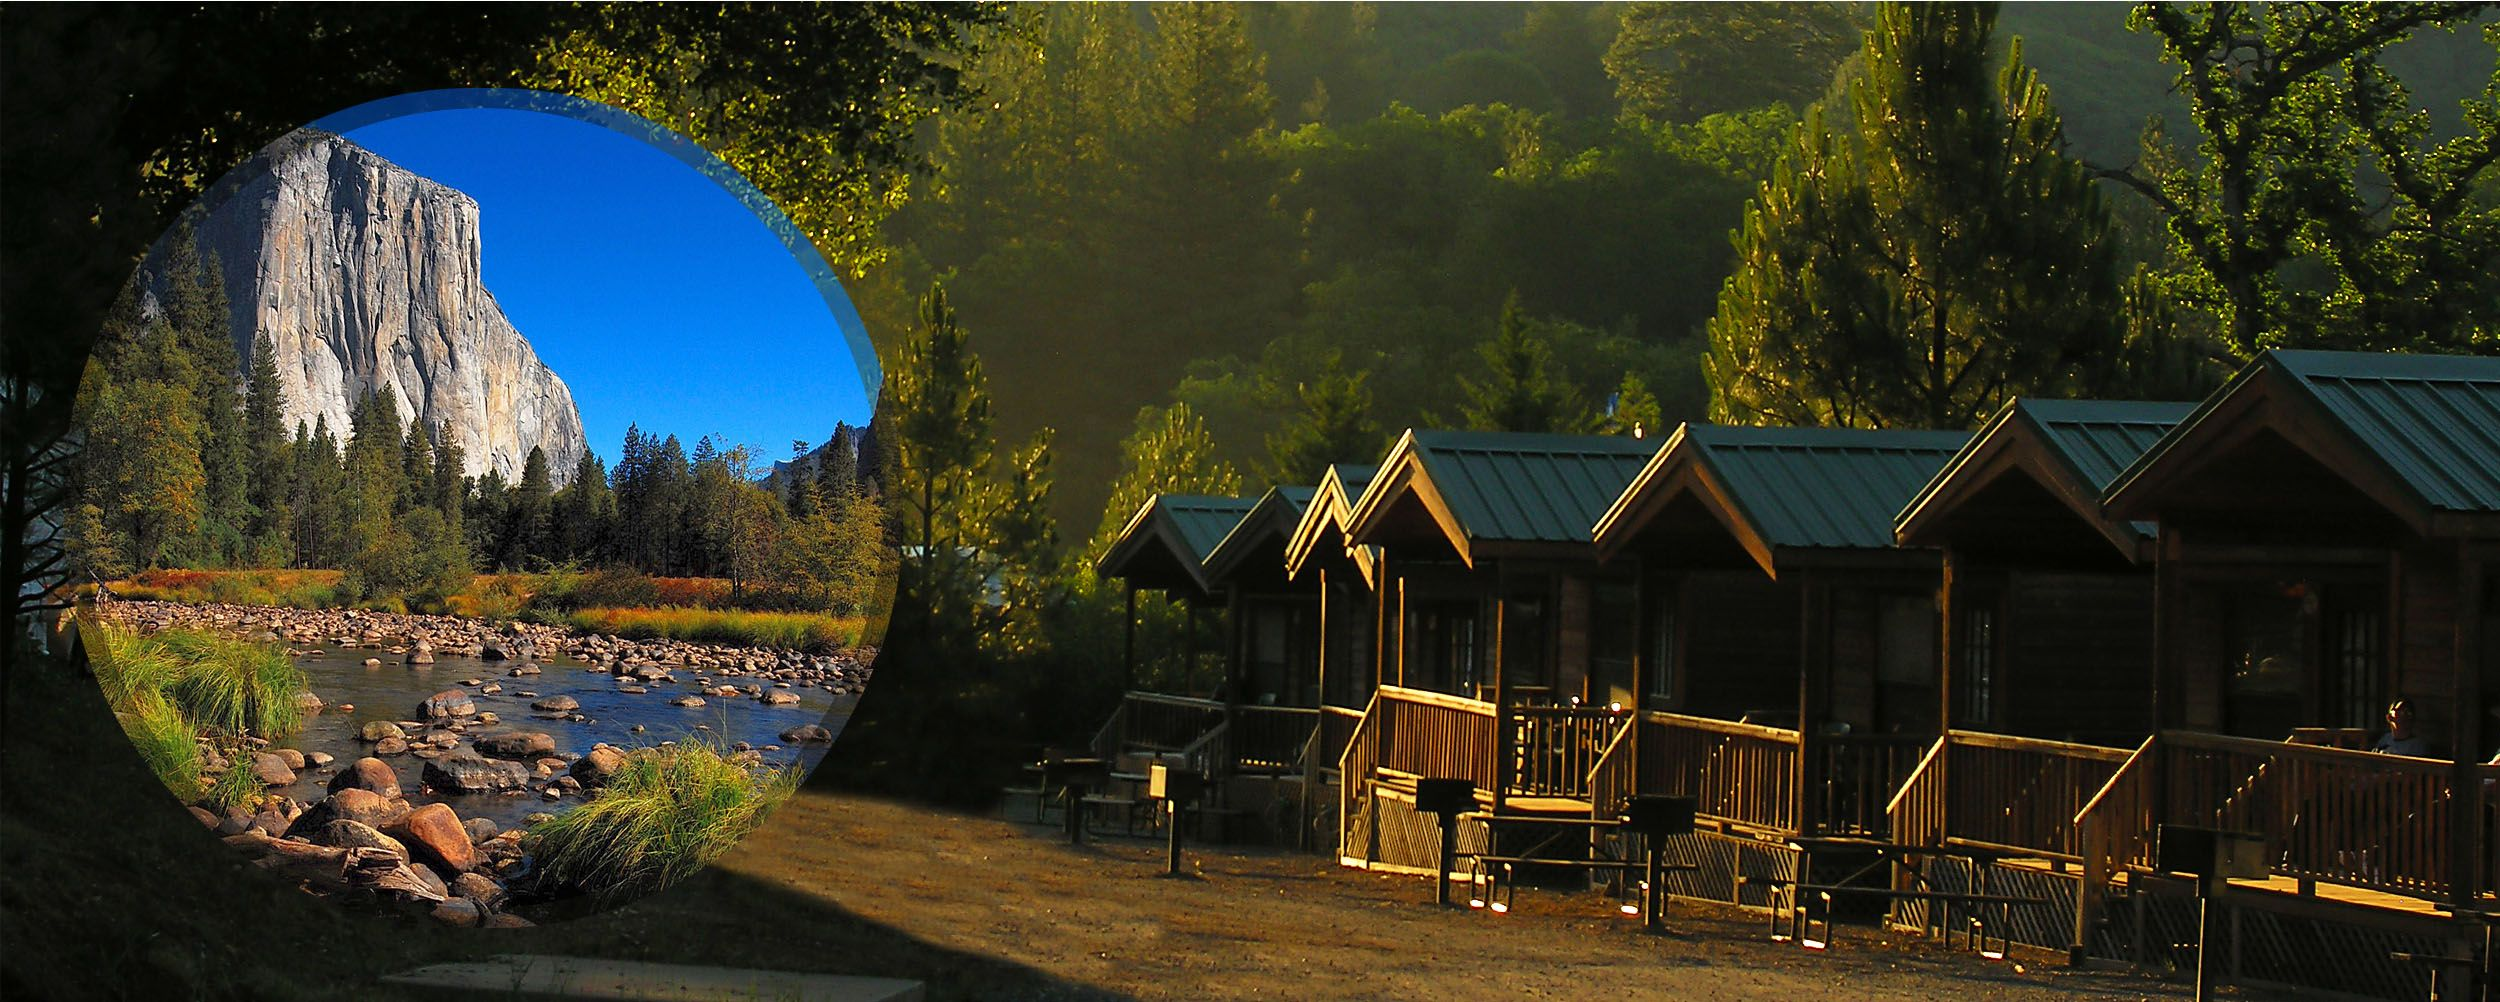 Yosemite National Park Campground Rental Cabins Rv